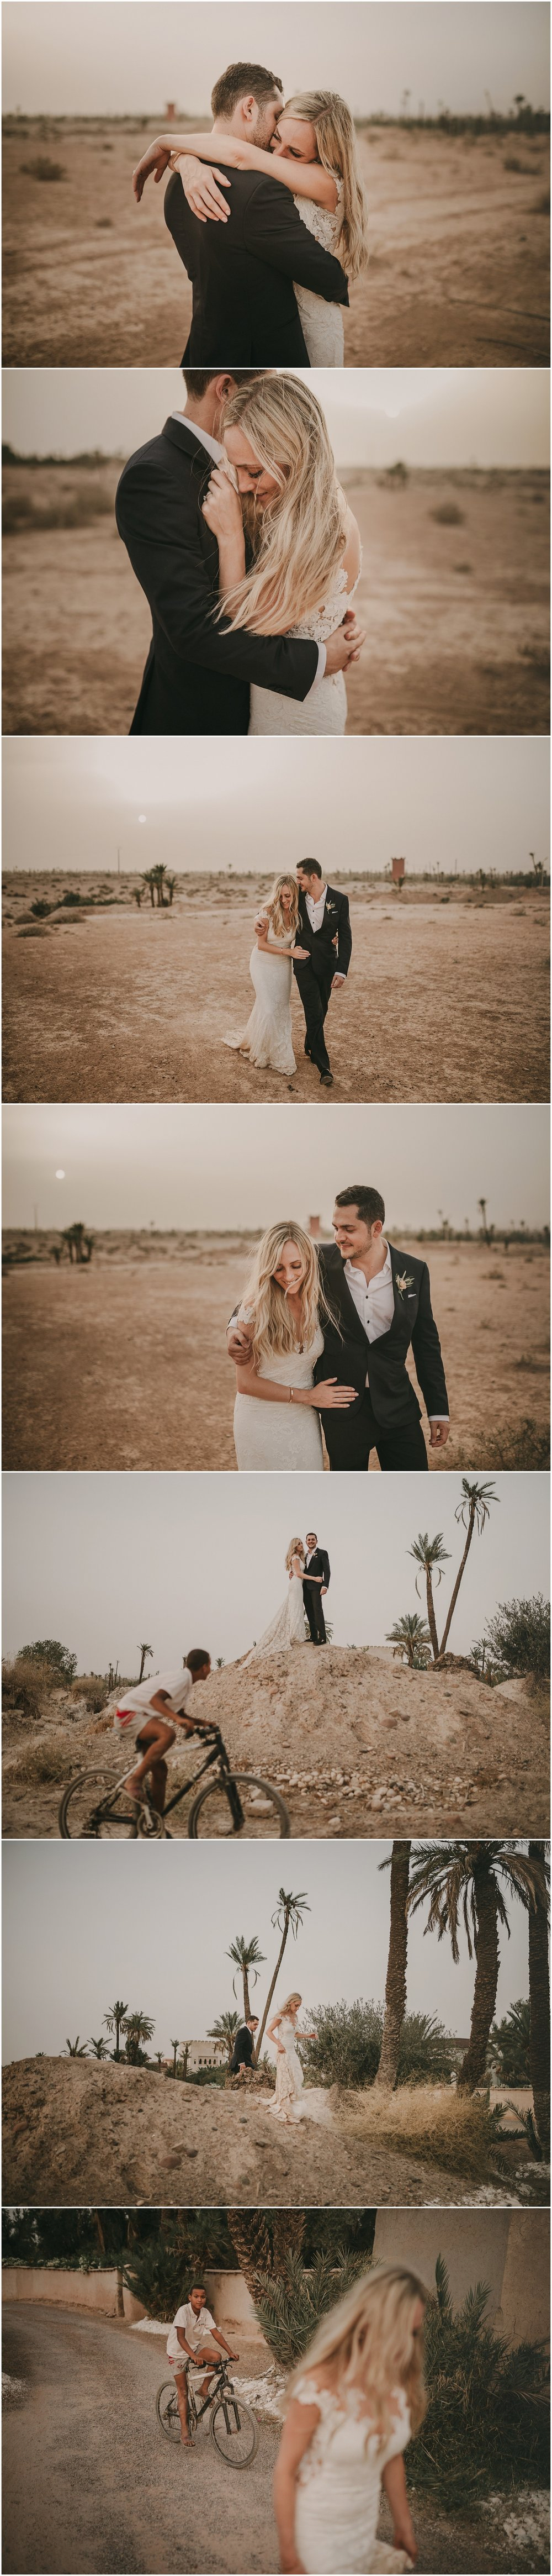 Marrakech wedding photography Pablo Laguia--108.jpg